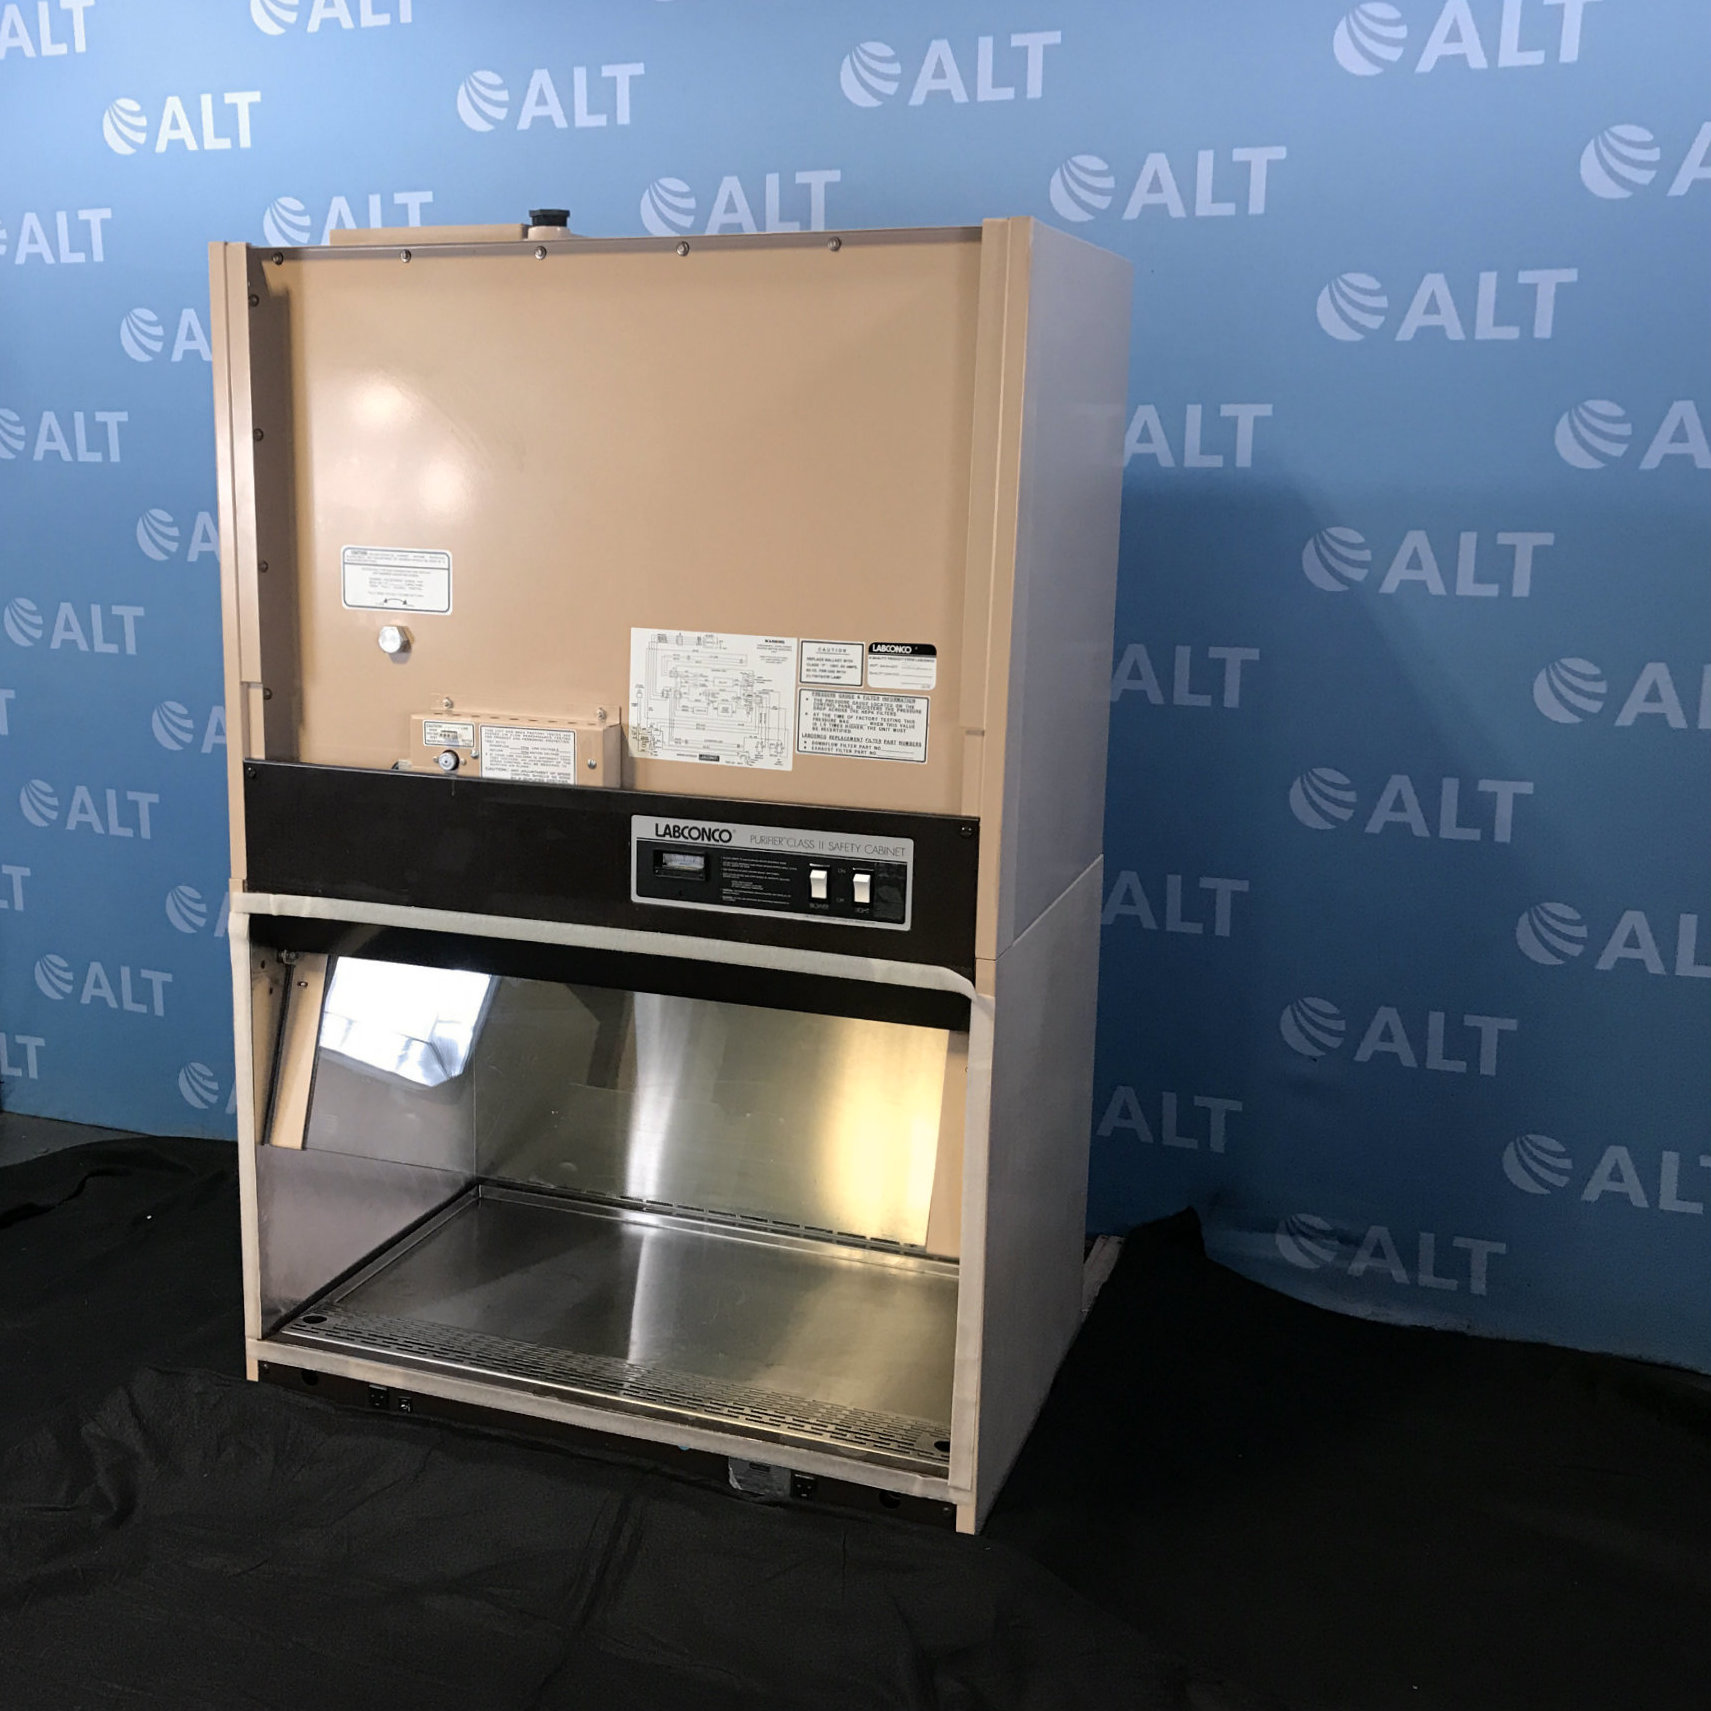 Labconco Purifier Class II Safety Cabinet CAT:36204 Image